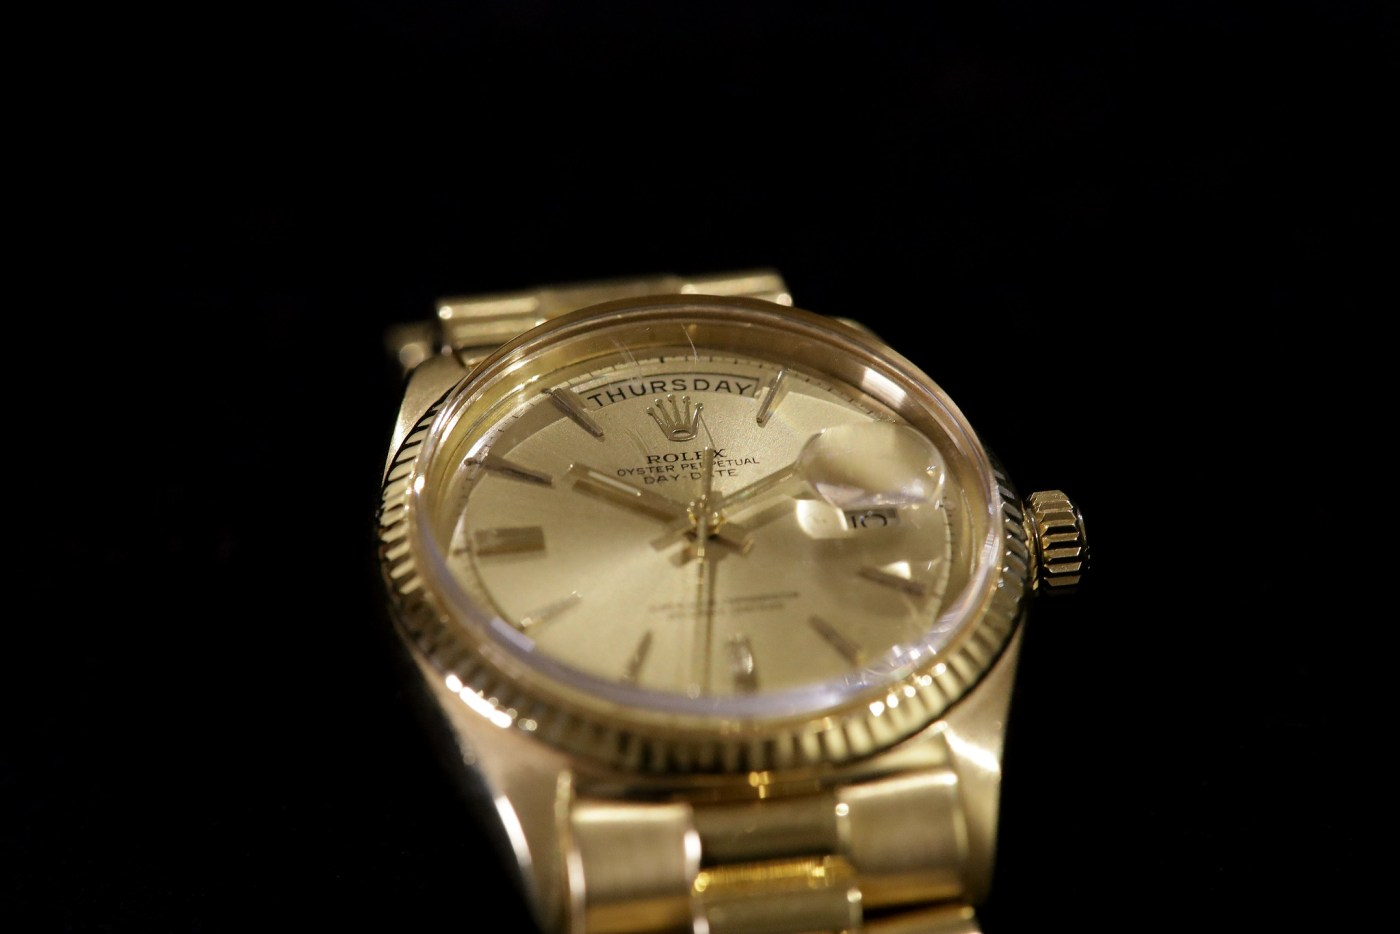 Jack Nicklaus 1967 Yellow Gold Rolex Day-Date Ref. 1803 crystal